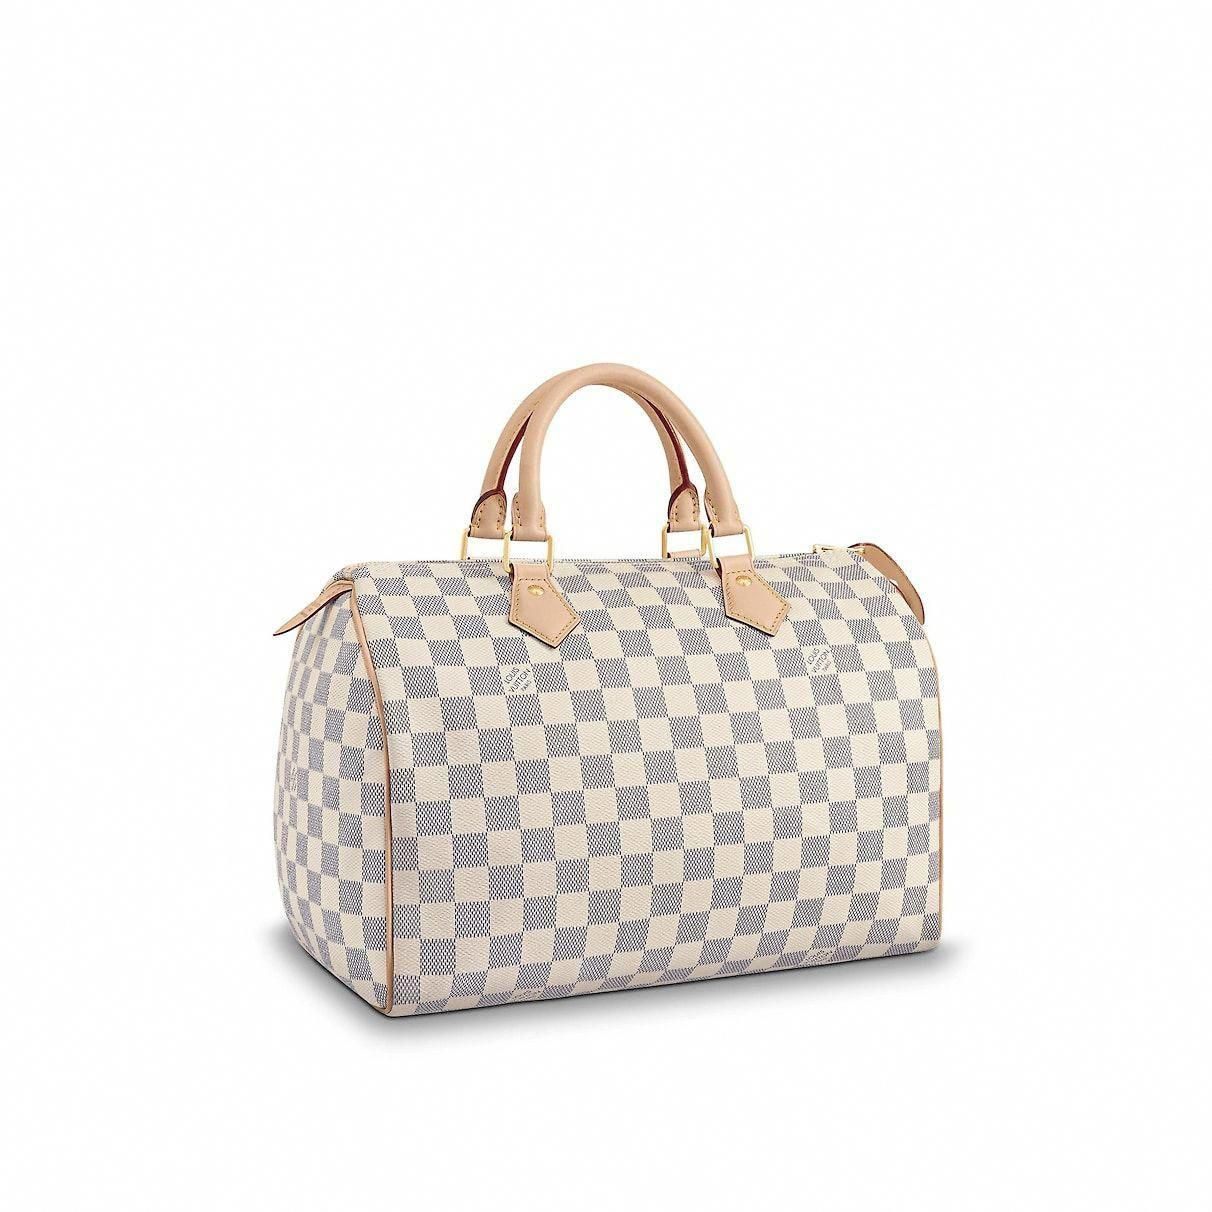 6665620c56 View 1 - Damier Azur Canvas HANDBAGS Top Handles Speedy 30